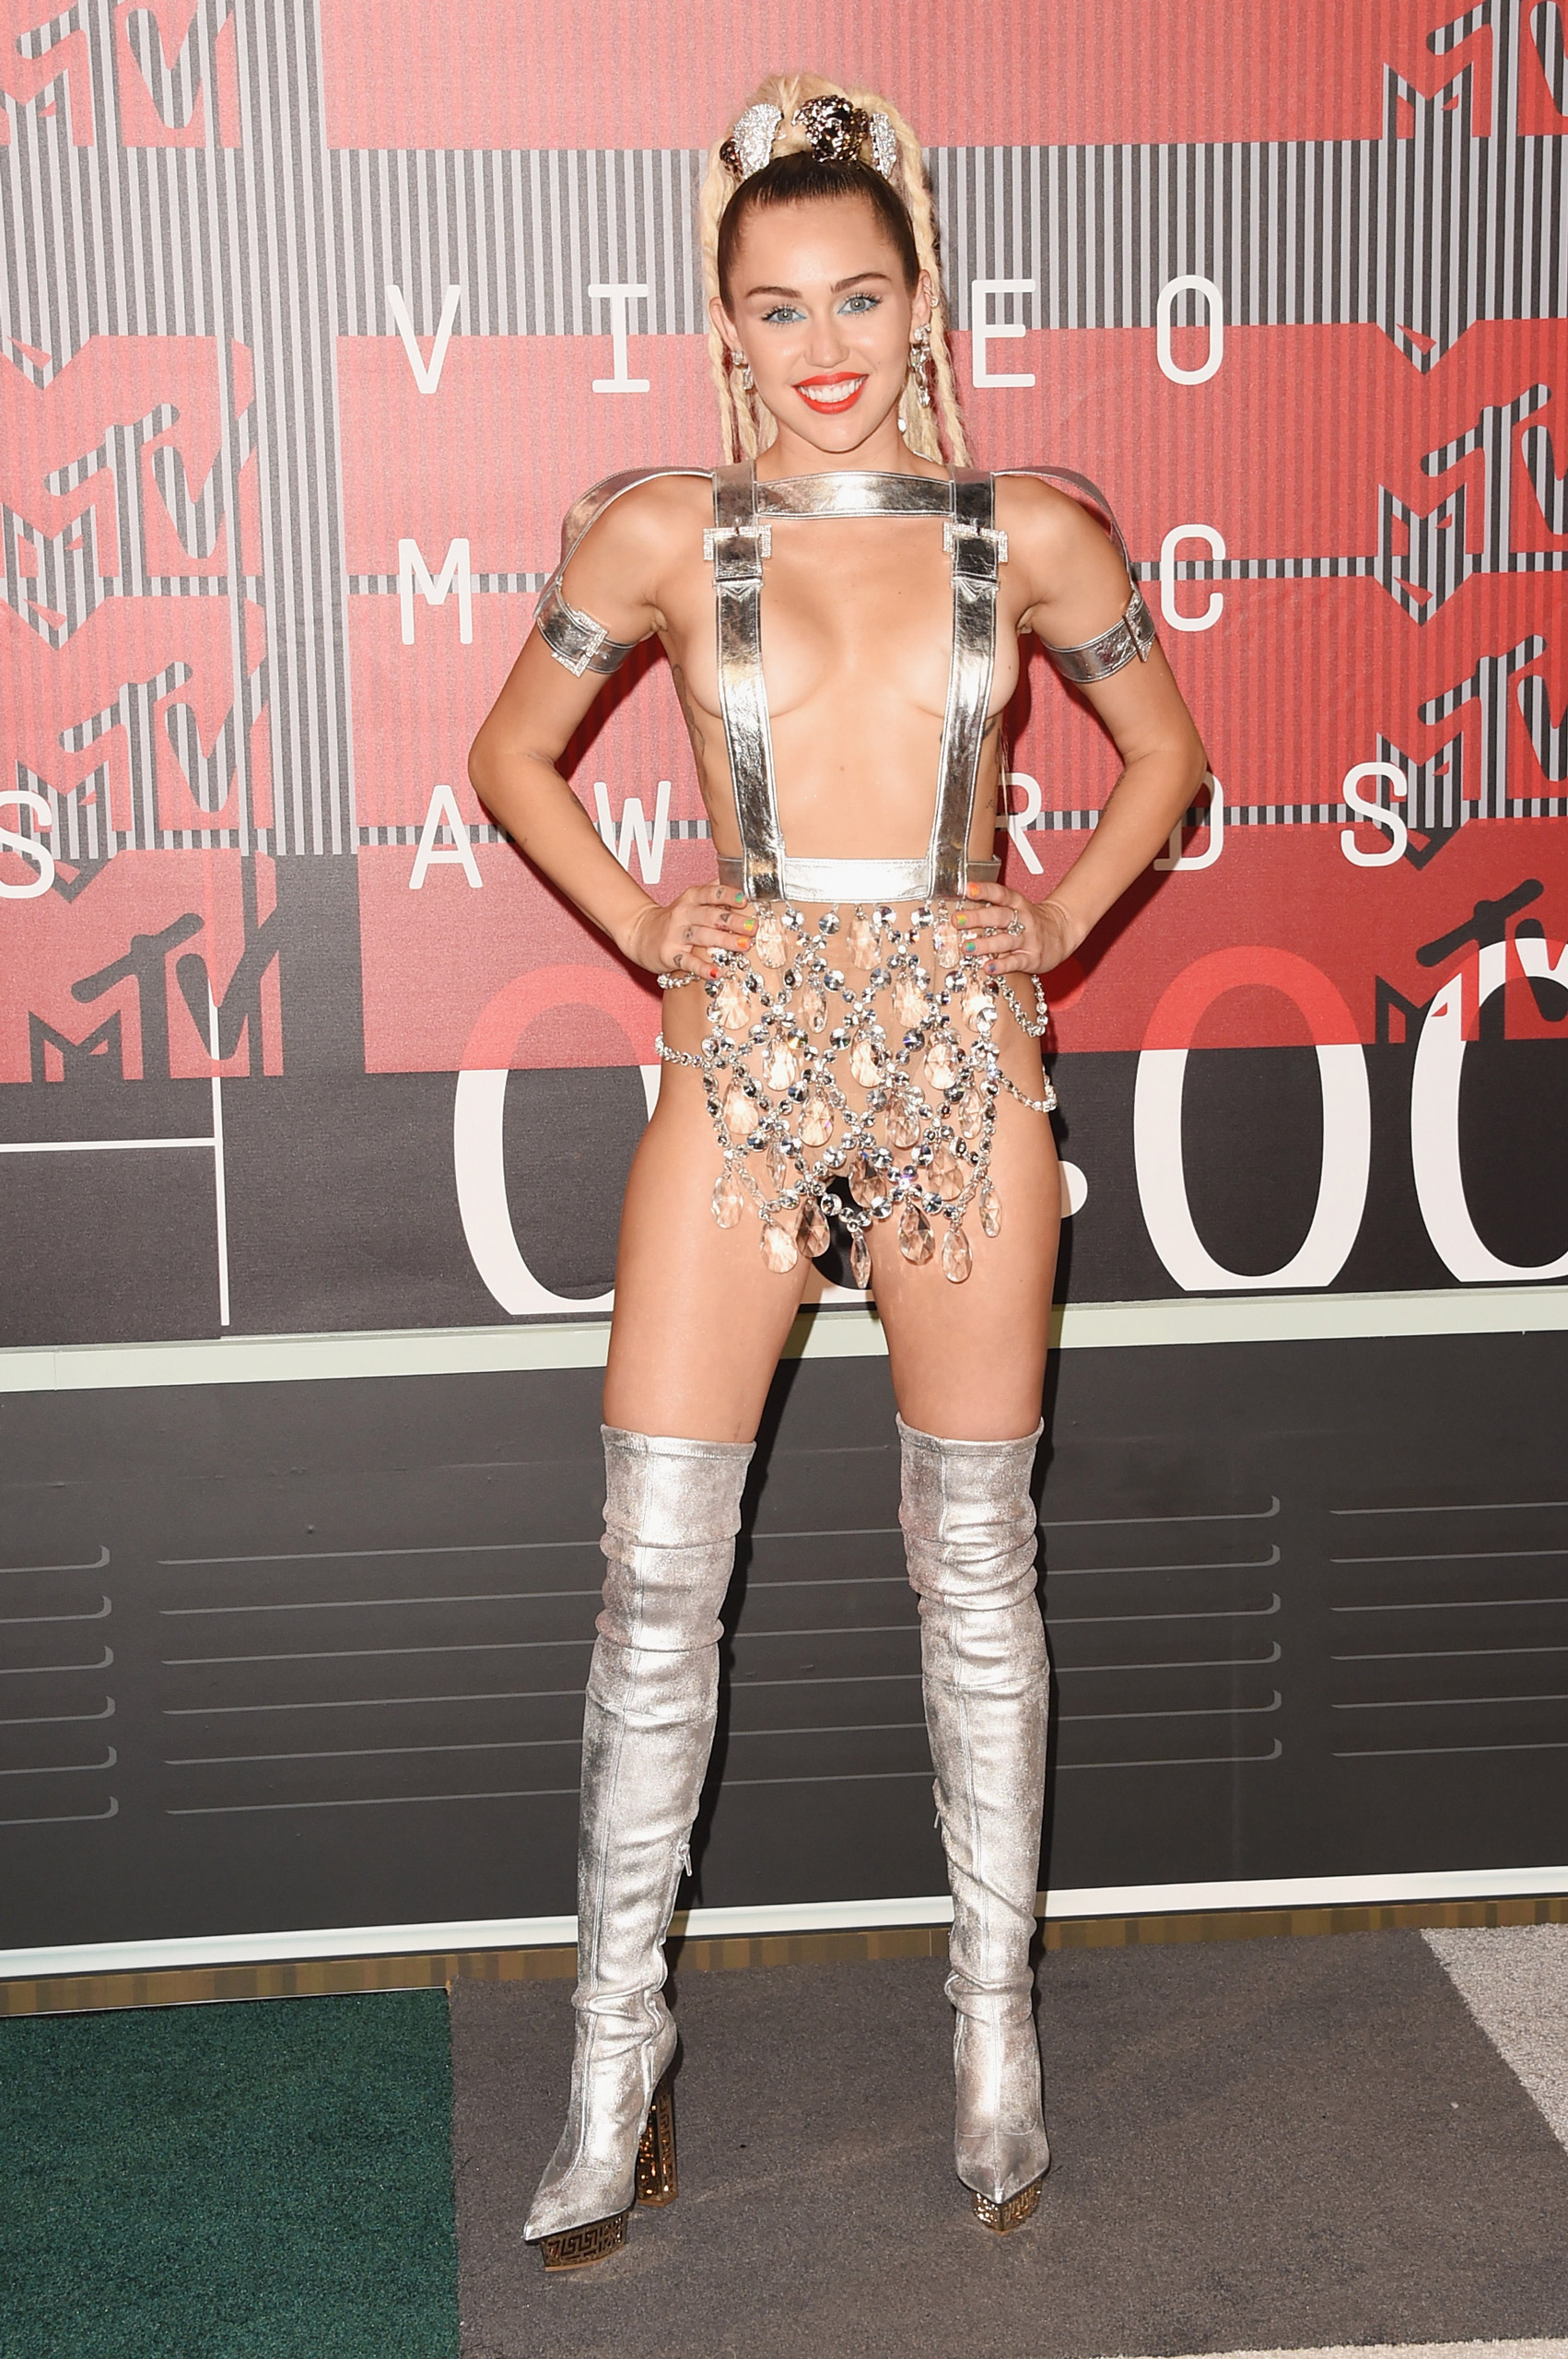 Miley Cyrus attends the 2015 MTV Video Music Awards at Microsoft Theater in Los Angeles on Aug. 30, 2015.